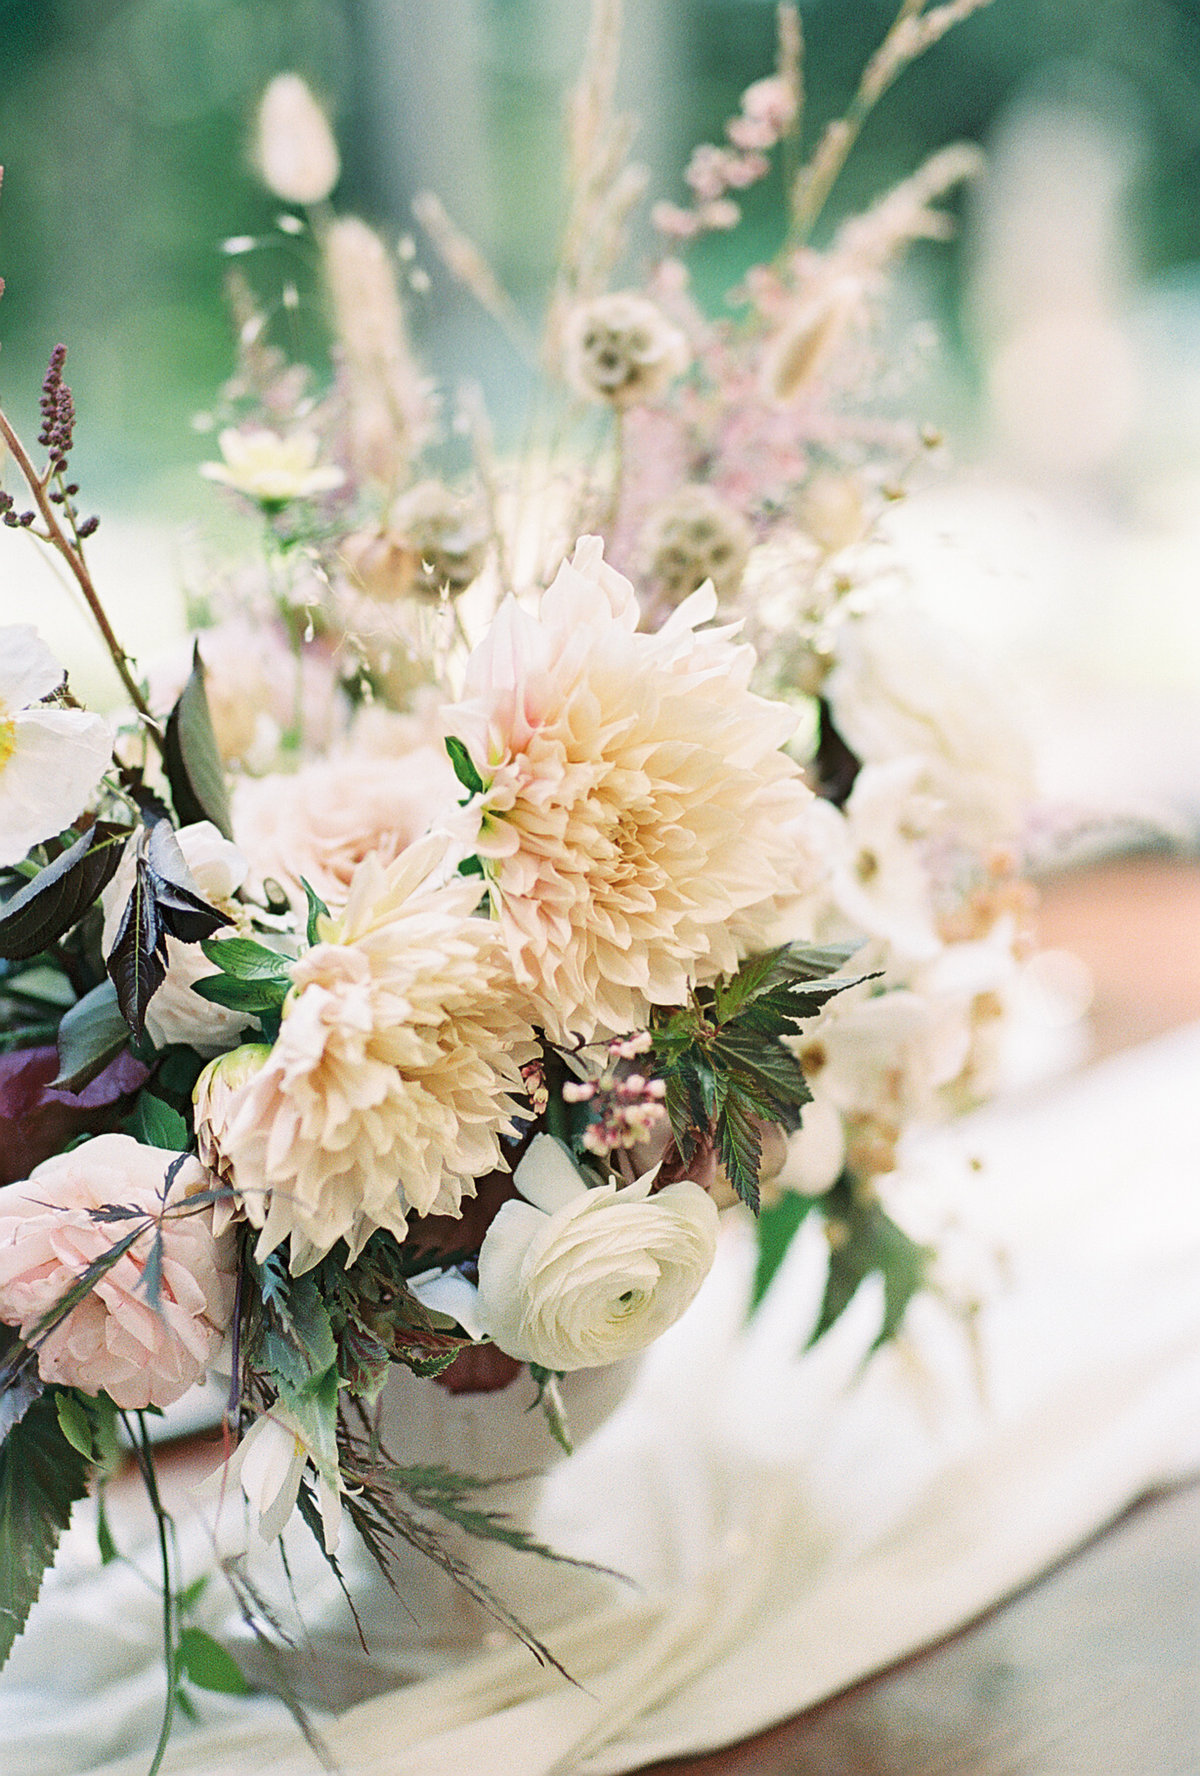 Bouquet with white and pale pink flowers Floral Designs by May Old Souls Vintage Rentals Butler Mansion | Pittsburgh Wedding Photographer | Anna Laero